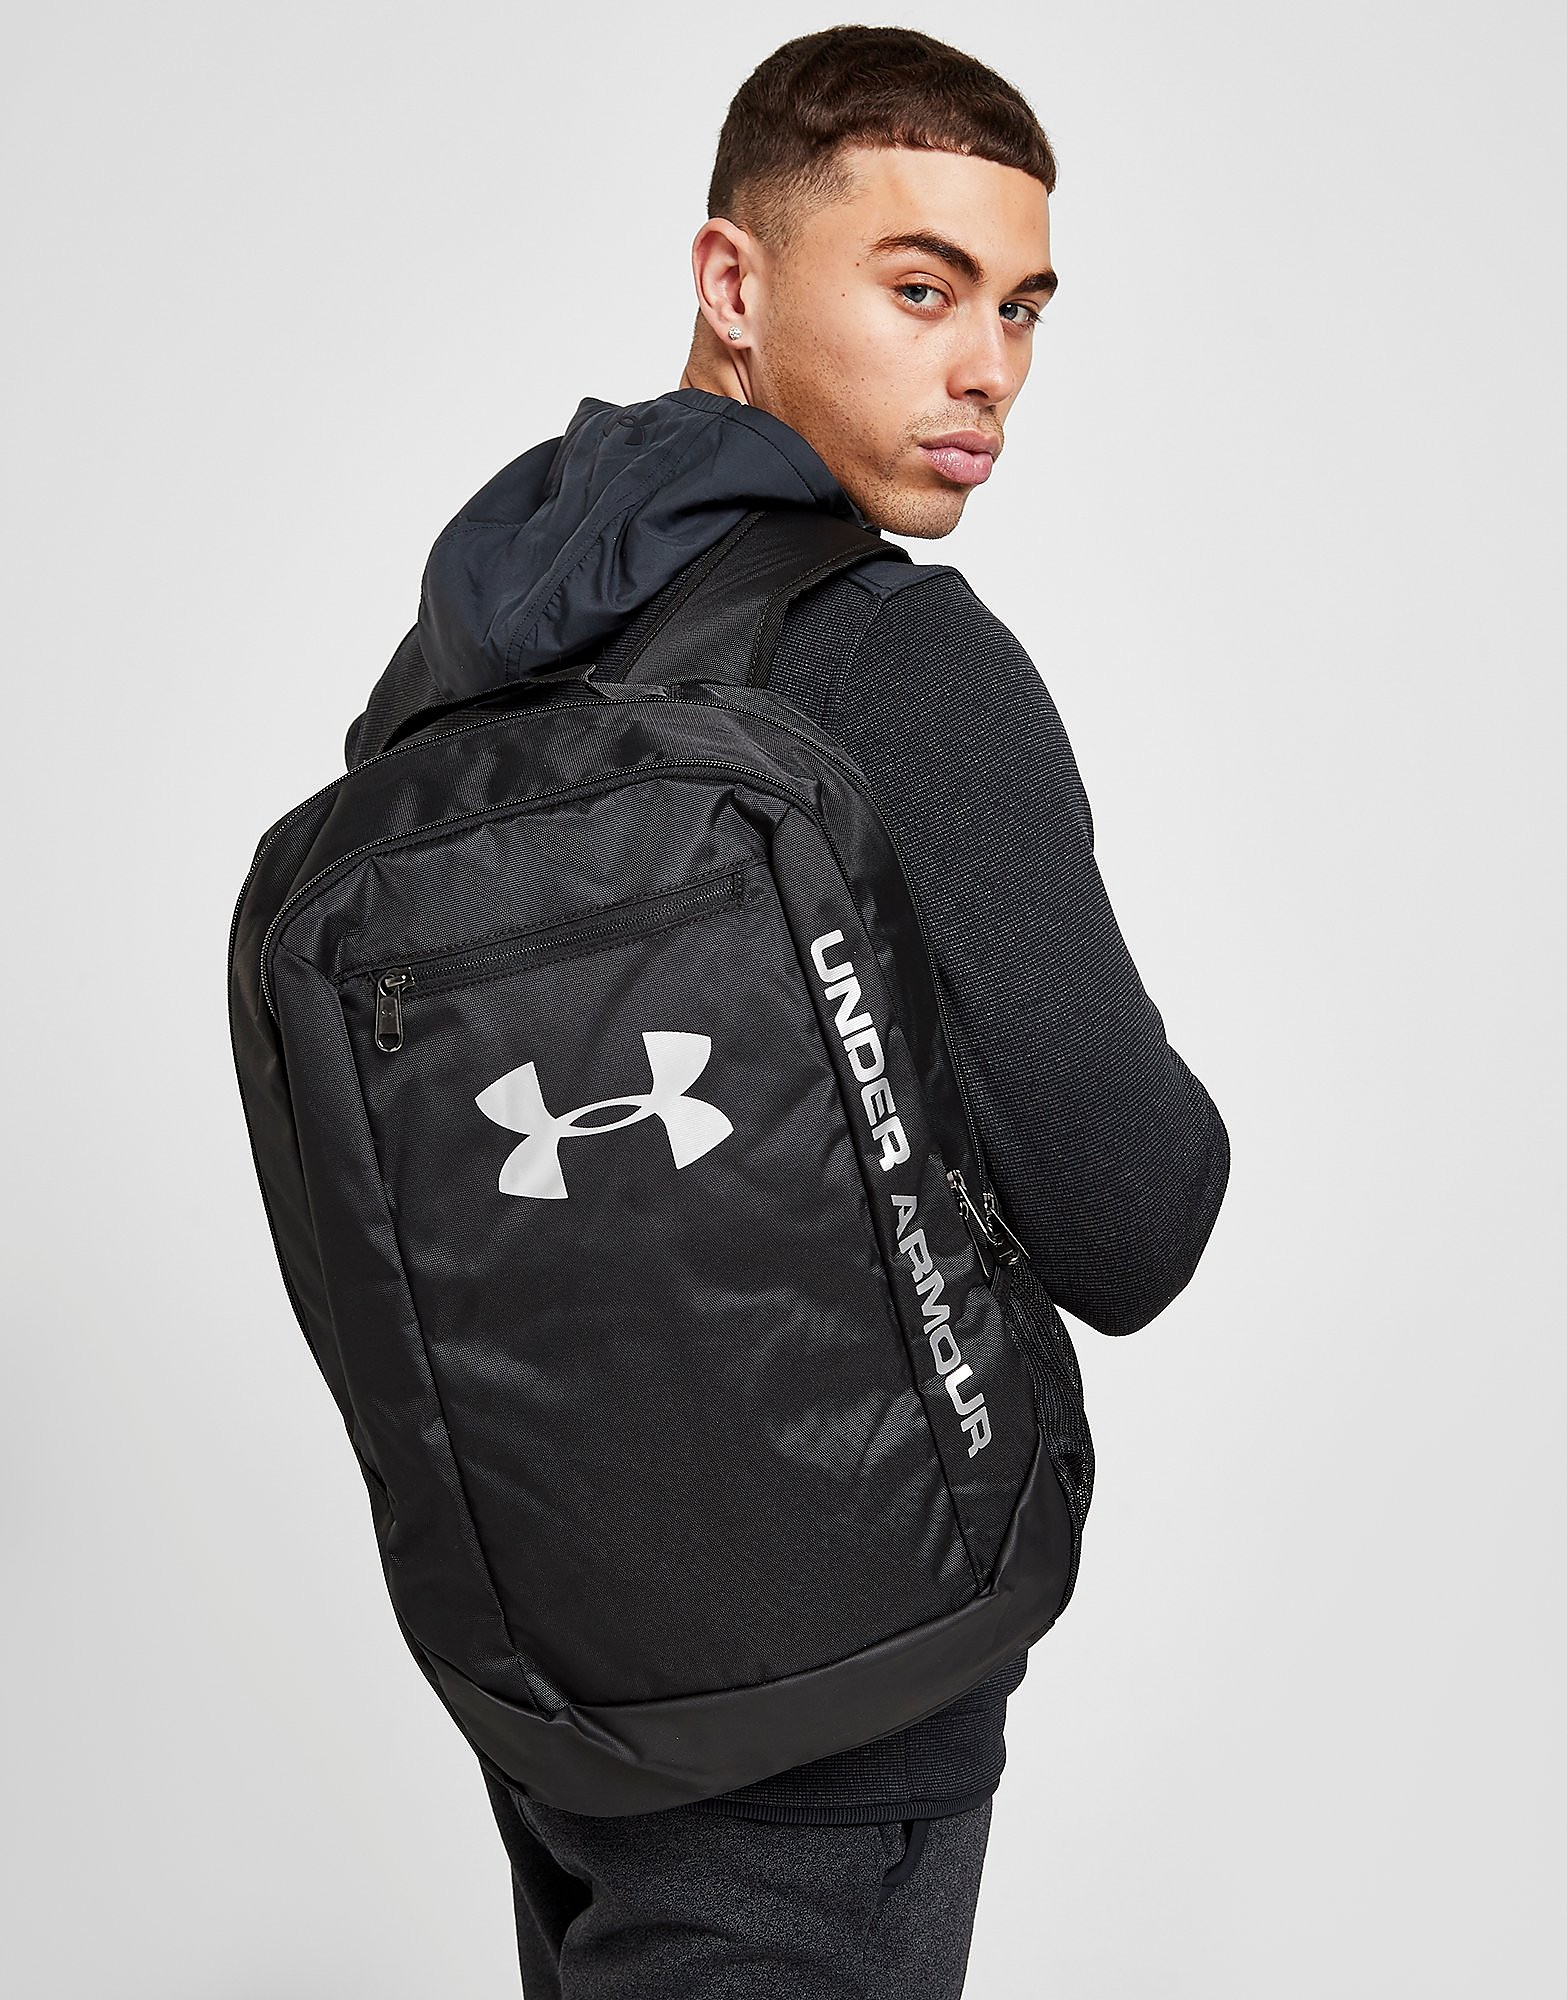 Under Armour Storm I Backpack